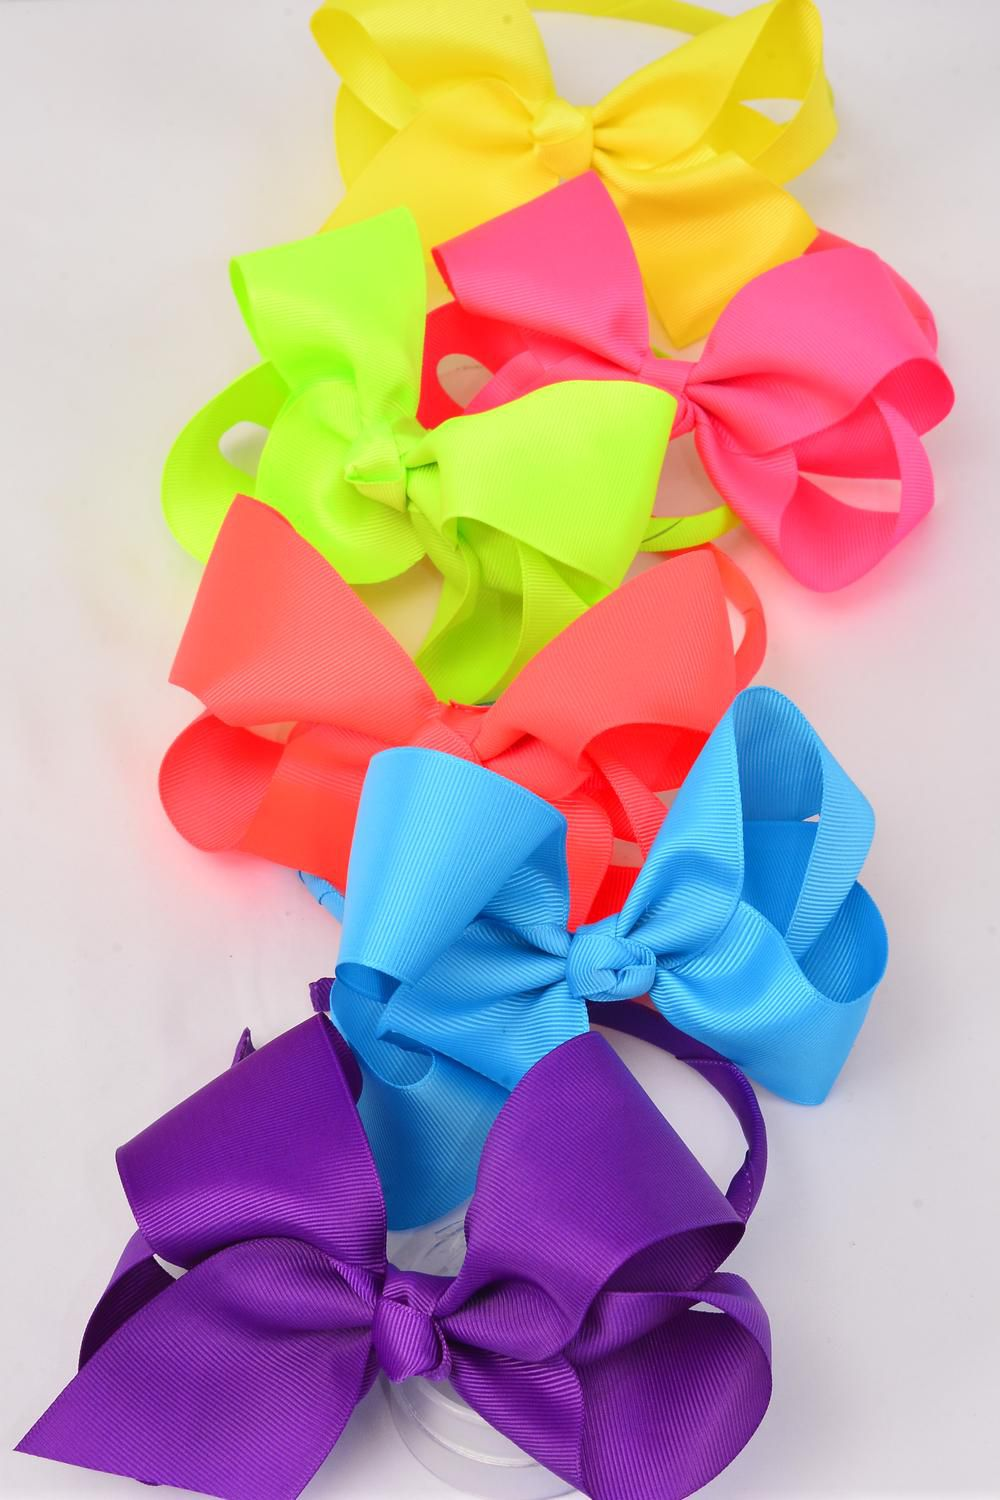 "Headband Horseshoe Jumbo Grosgrain Bow-tie Carabben Neon/DZ **Caribbean Neon** Bow Size-6""x 5"",2 Turquoise,2 Orange,2 White,2 Pink,2 Purple,1 Yellow,1 Lime Mix,Display Card & UPC Code,W Clear Box"